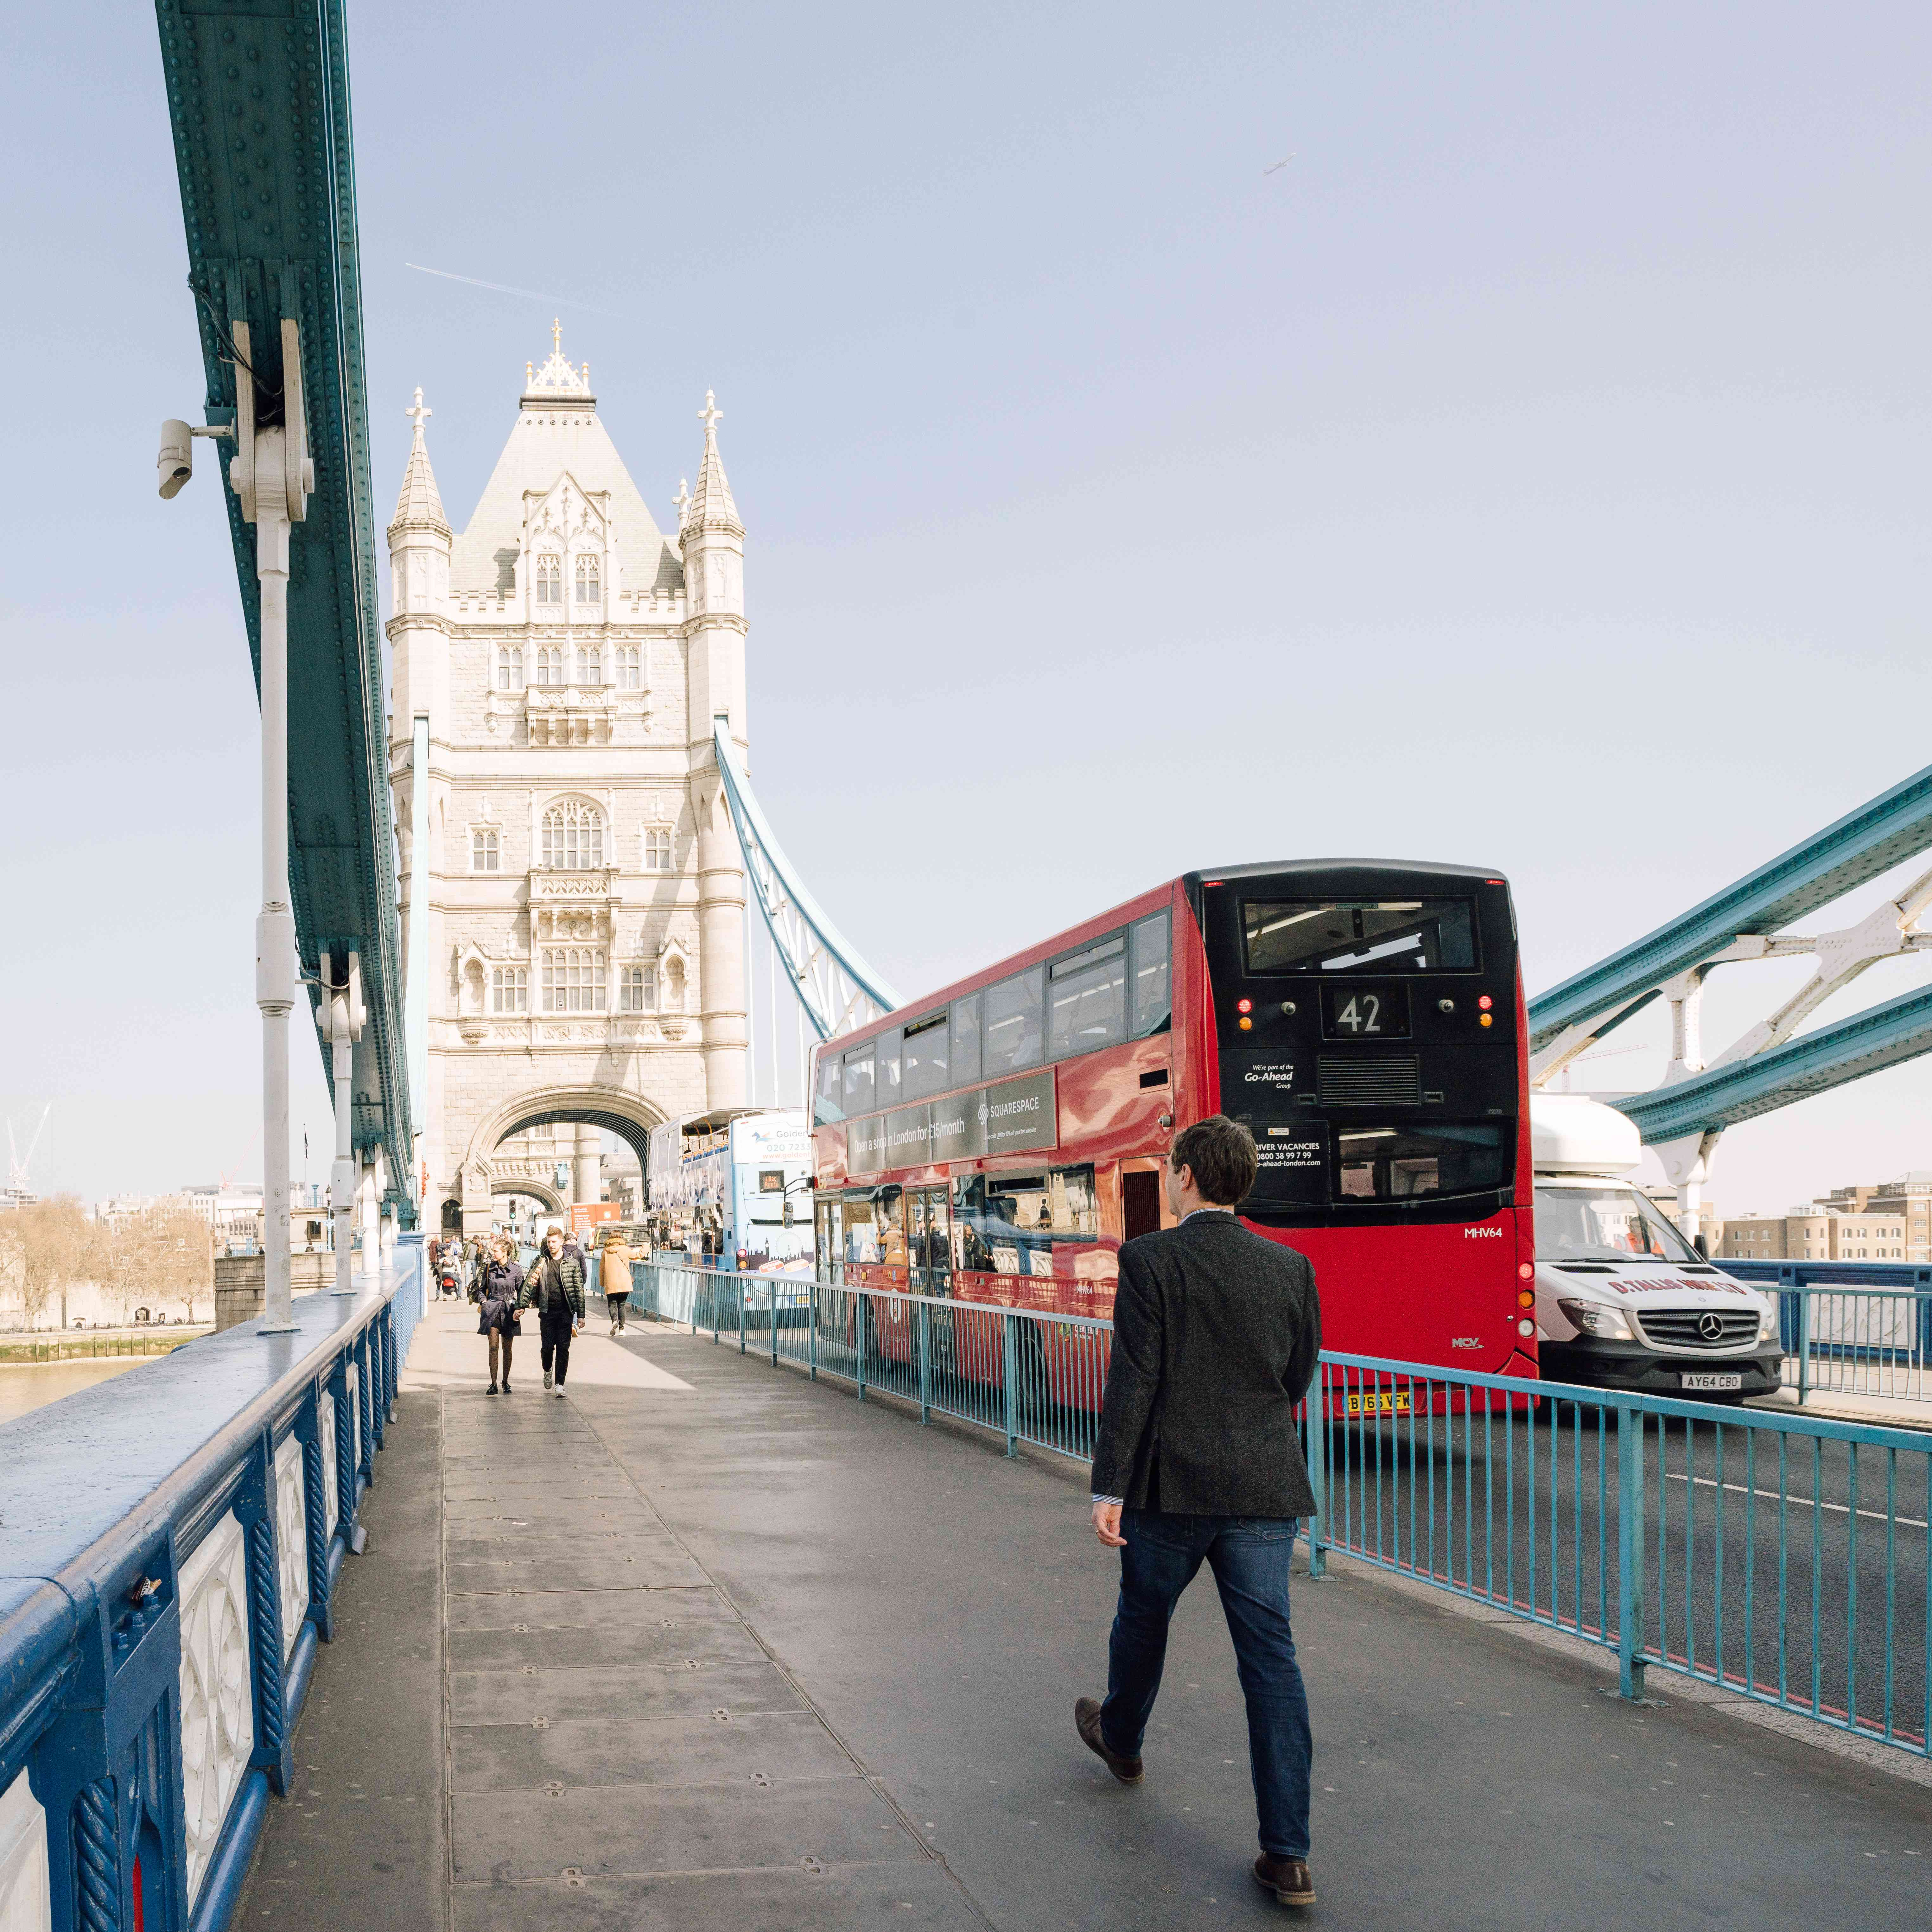 A double decker red bus crossing tower bridge